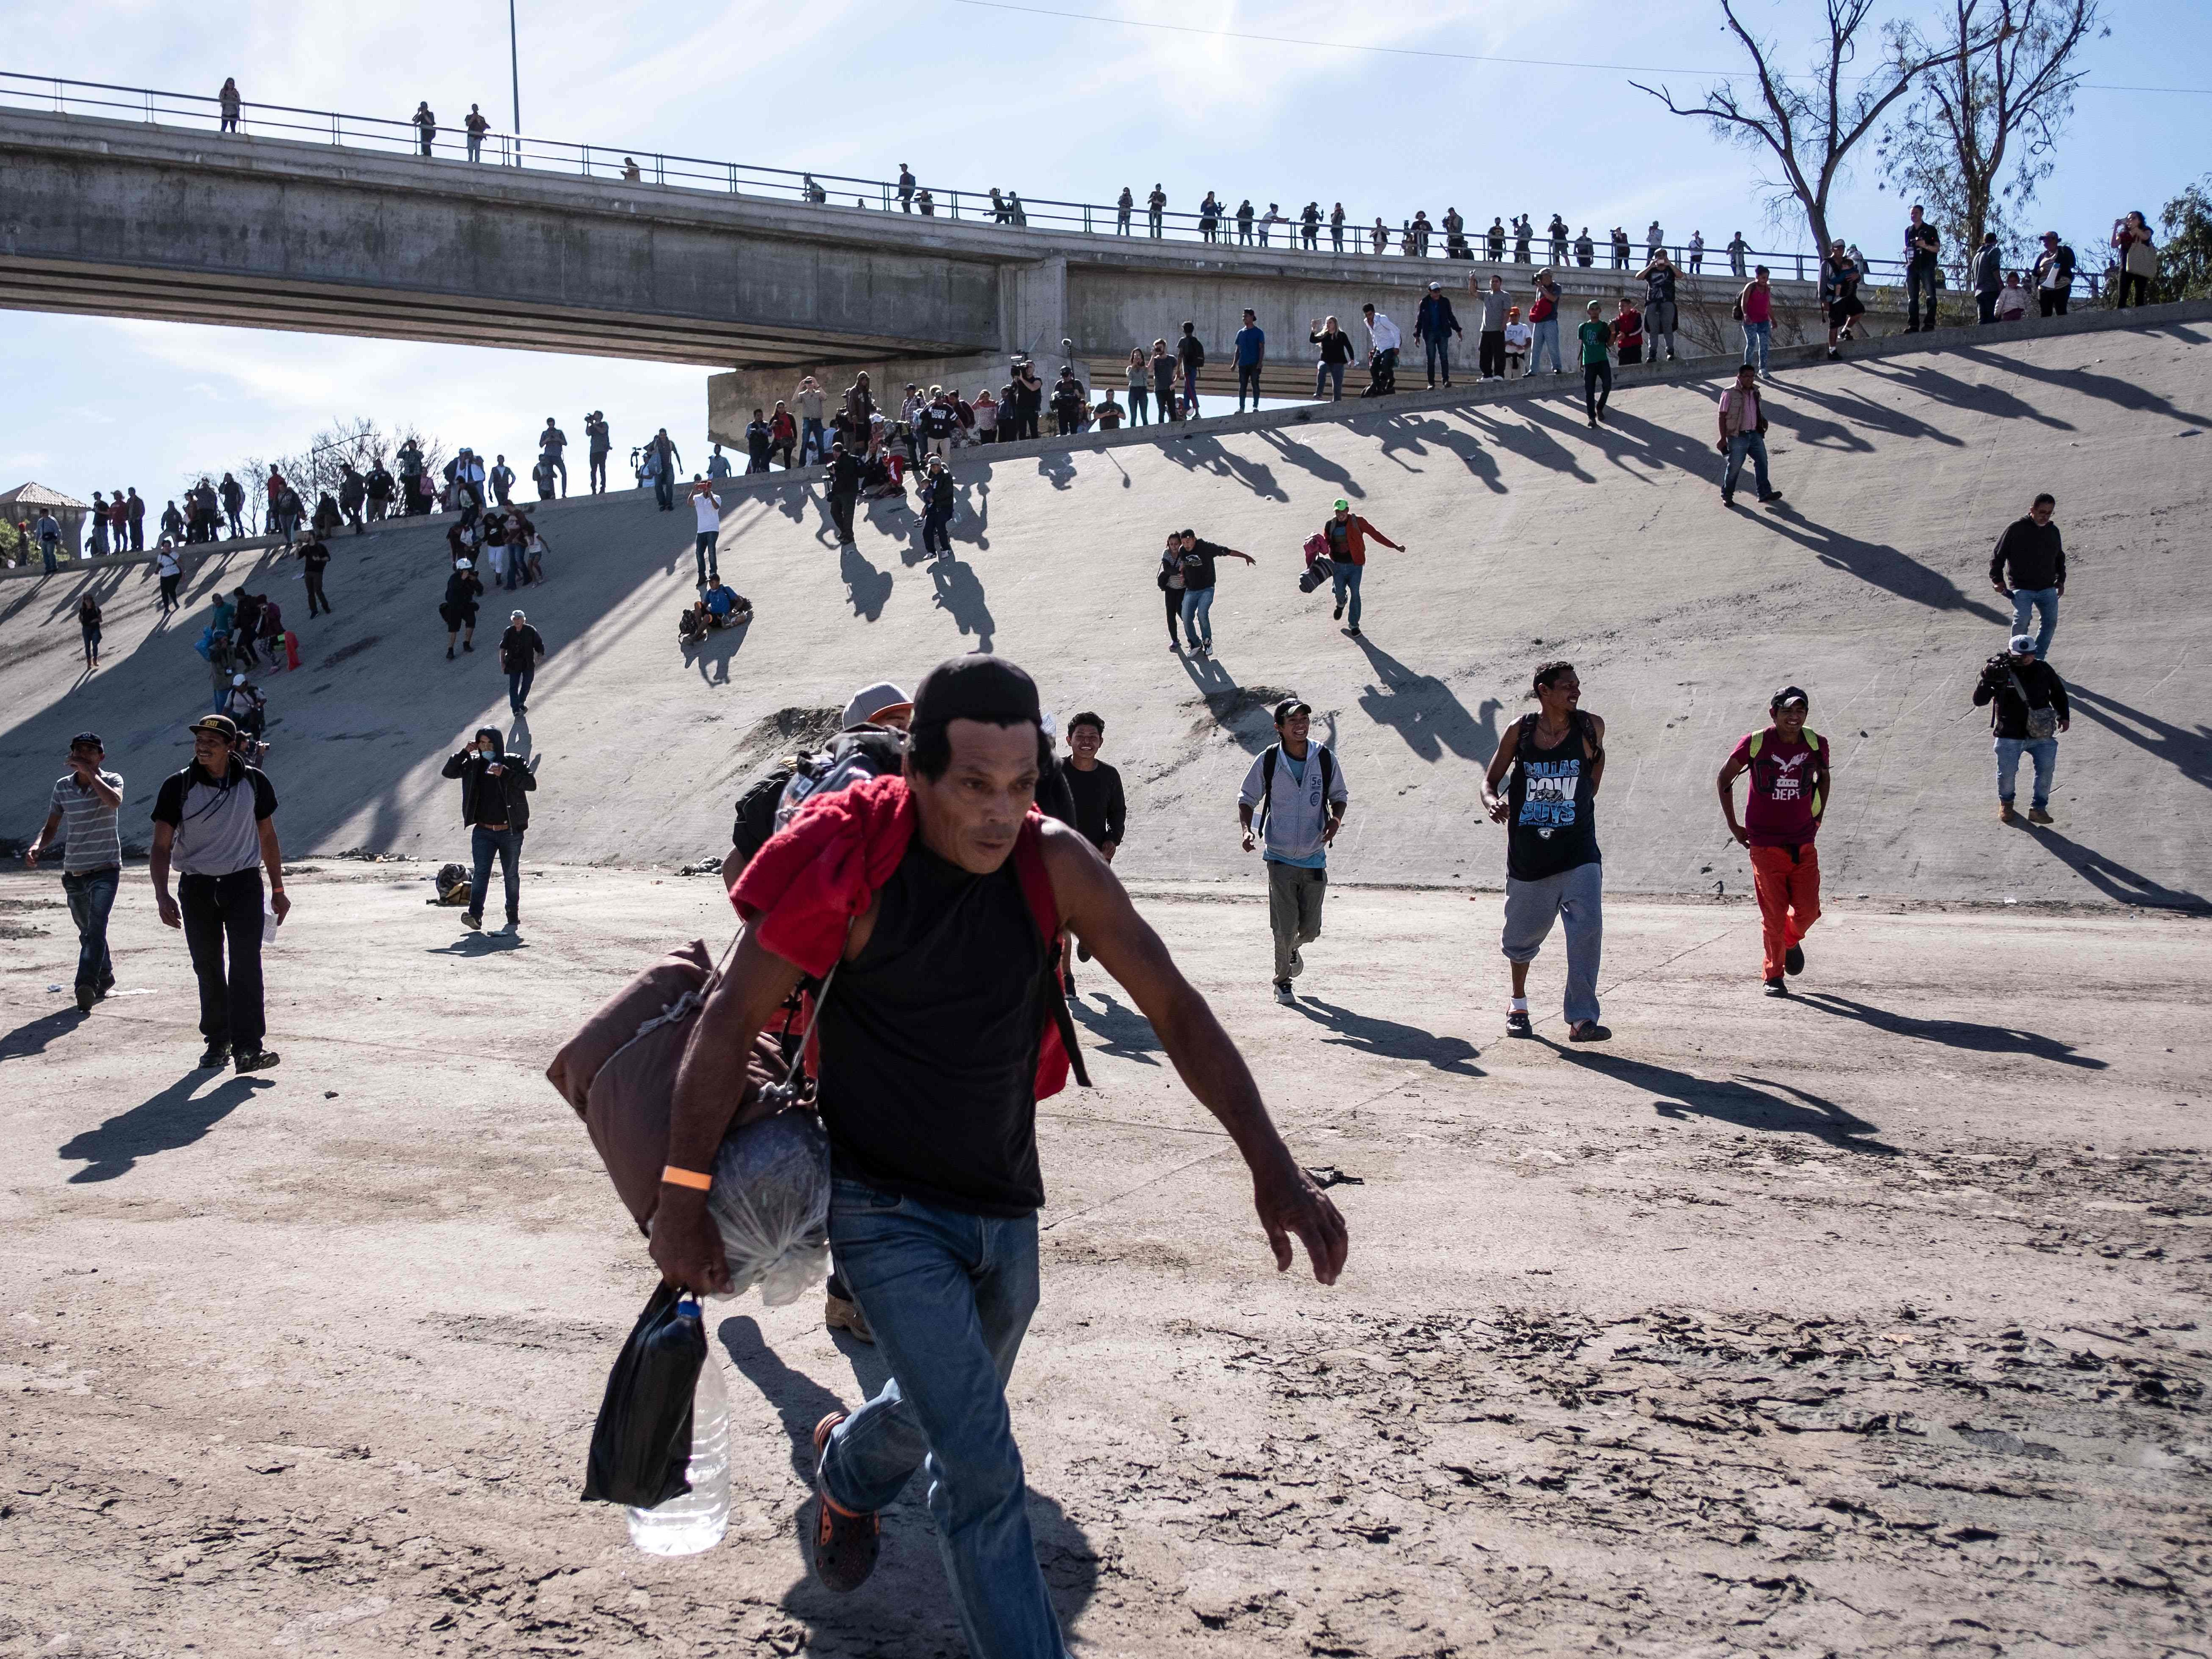 A group of Central American migrants run along the dry riverbed of the Tijuana River in an attempt to get to El Chaparral port of entry, in Tijuana, Mexico, near the US-Mexico border, Nov. 25, 2018. Hundreds of migrants attempted to storm a border fence separating Mexico from the U.S. on Sunday amid mounting fears they will be kept in Mexico while their applications for a asylum are processed.